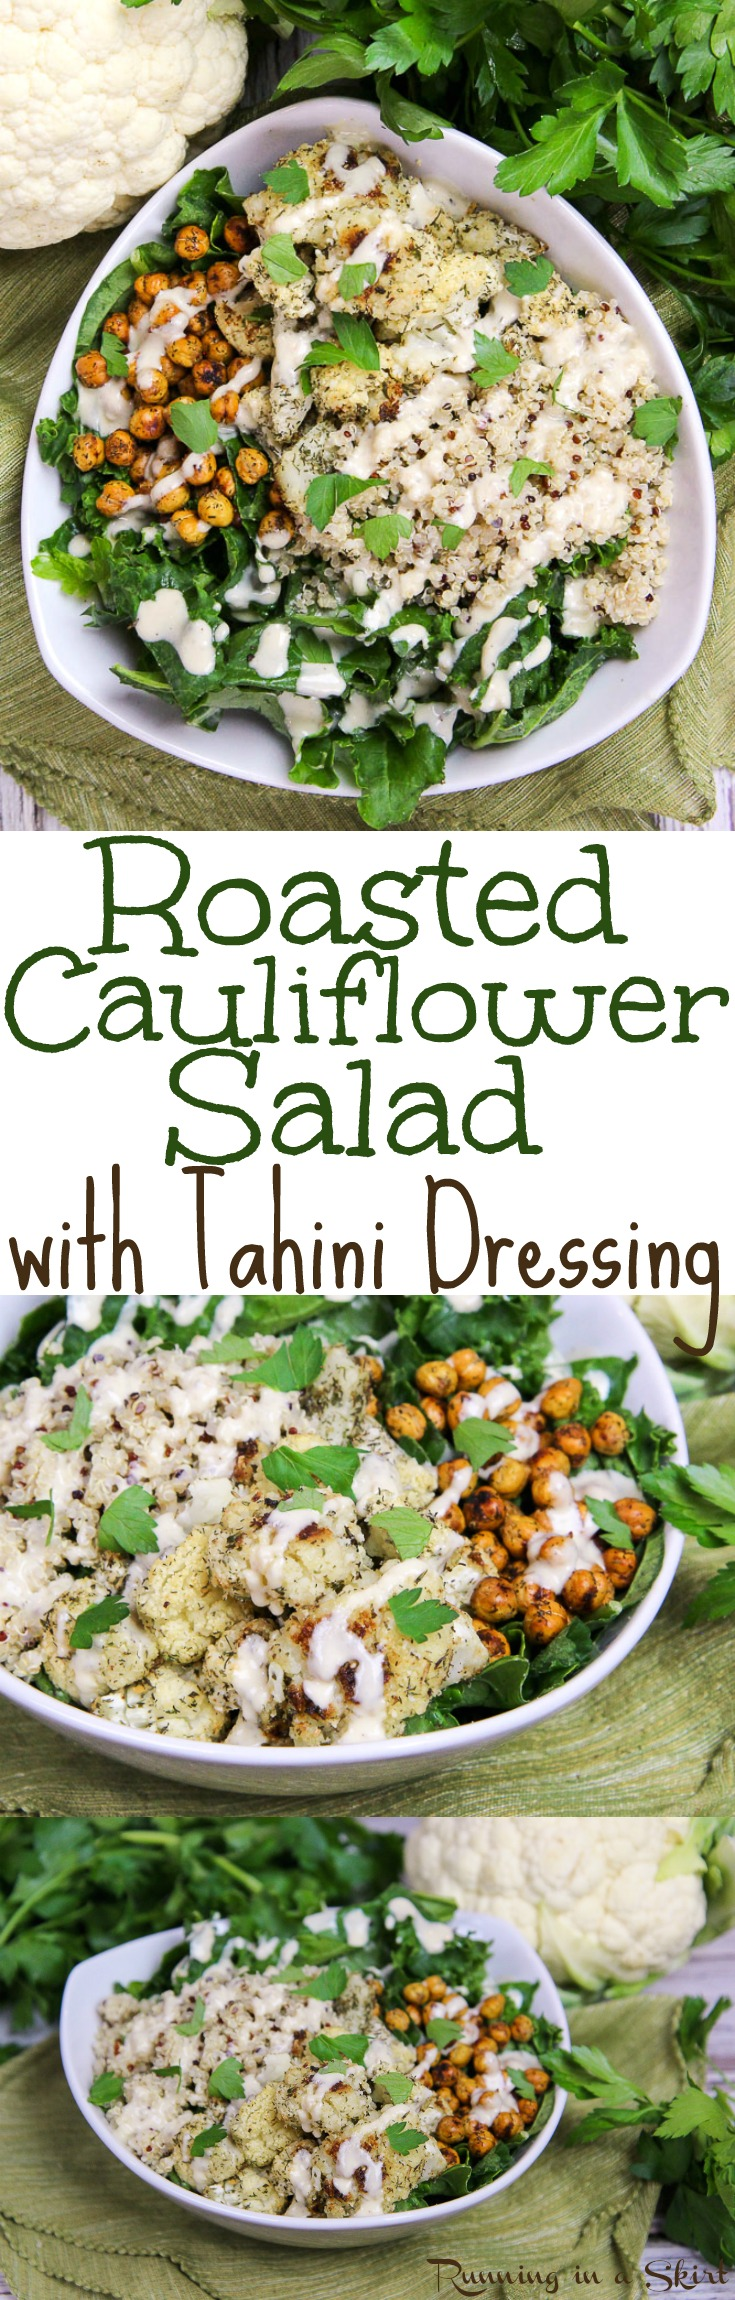 Roasted Cauliflower Salad recipe with chickpeas and with tahini dressing.  A healthy, clean eating, low carb, vegan dinner.  Use Curry Roasted Cauliflower for a vegan bowl or Parmesan Ranch Cauliflower for a vegetarian one.  The Lemon Tahini Dressing takes this to the next level! / Running in a Skirt via @juliewunder